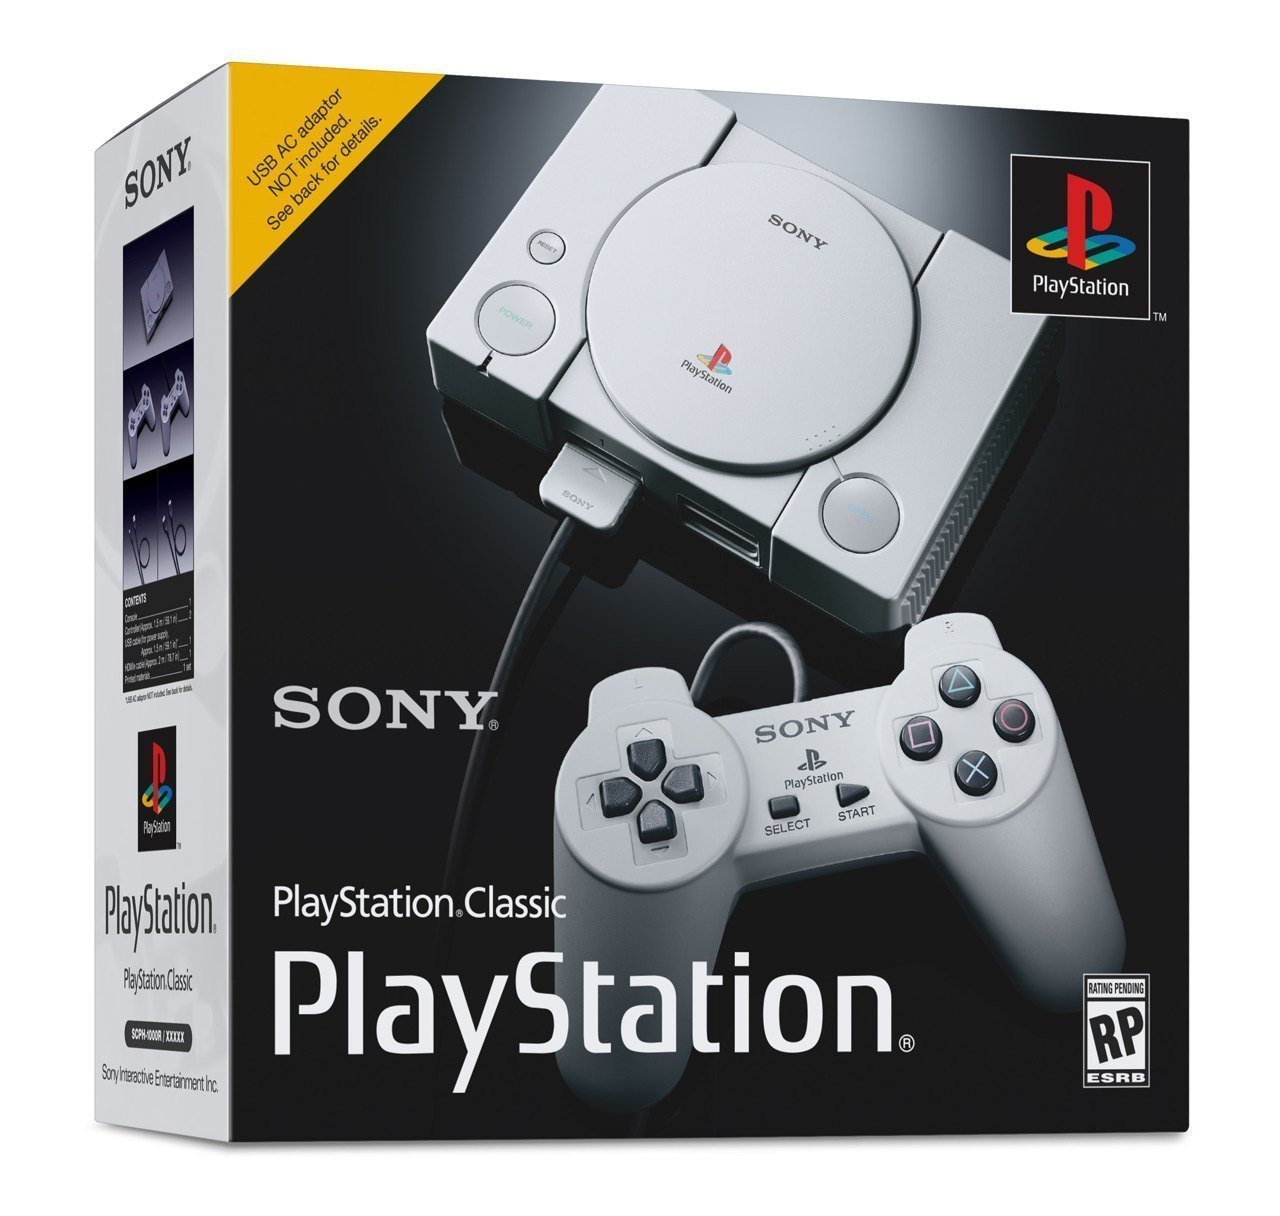 PlayStation Classic Mini games console REVEALED: Sony PS1 retro games coming December